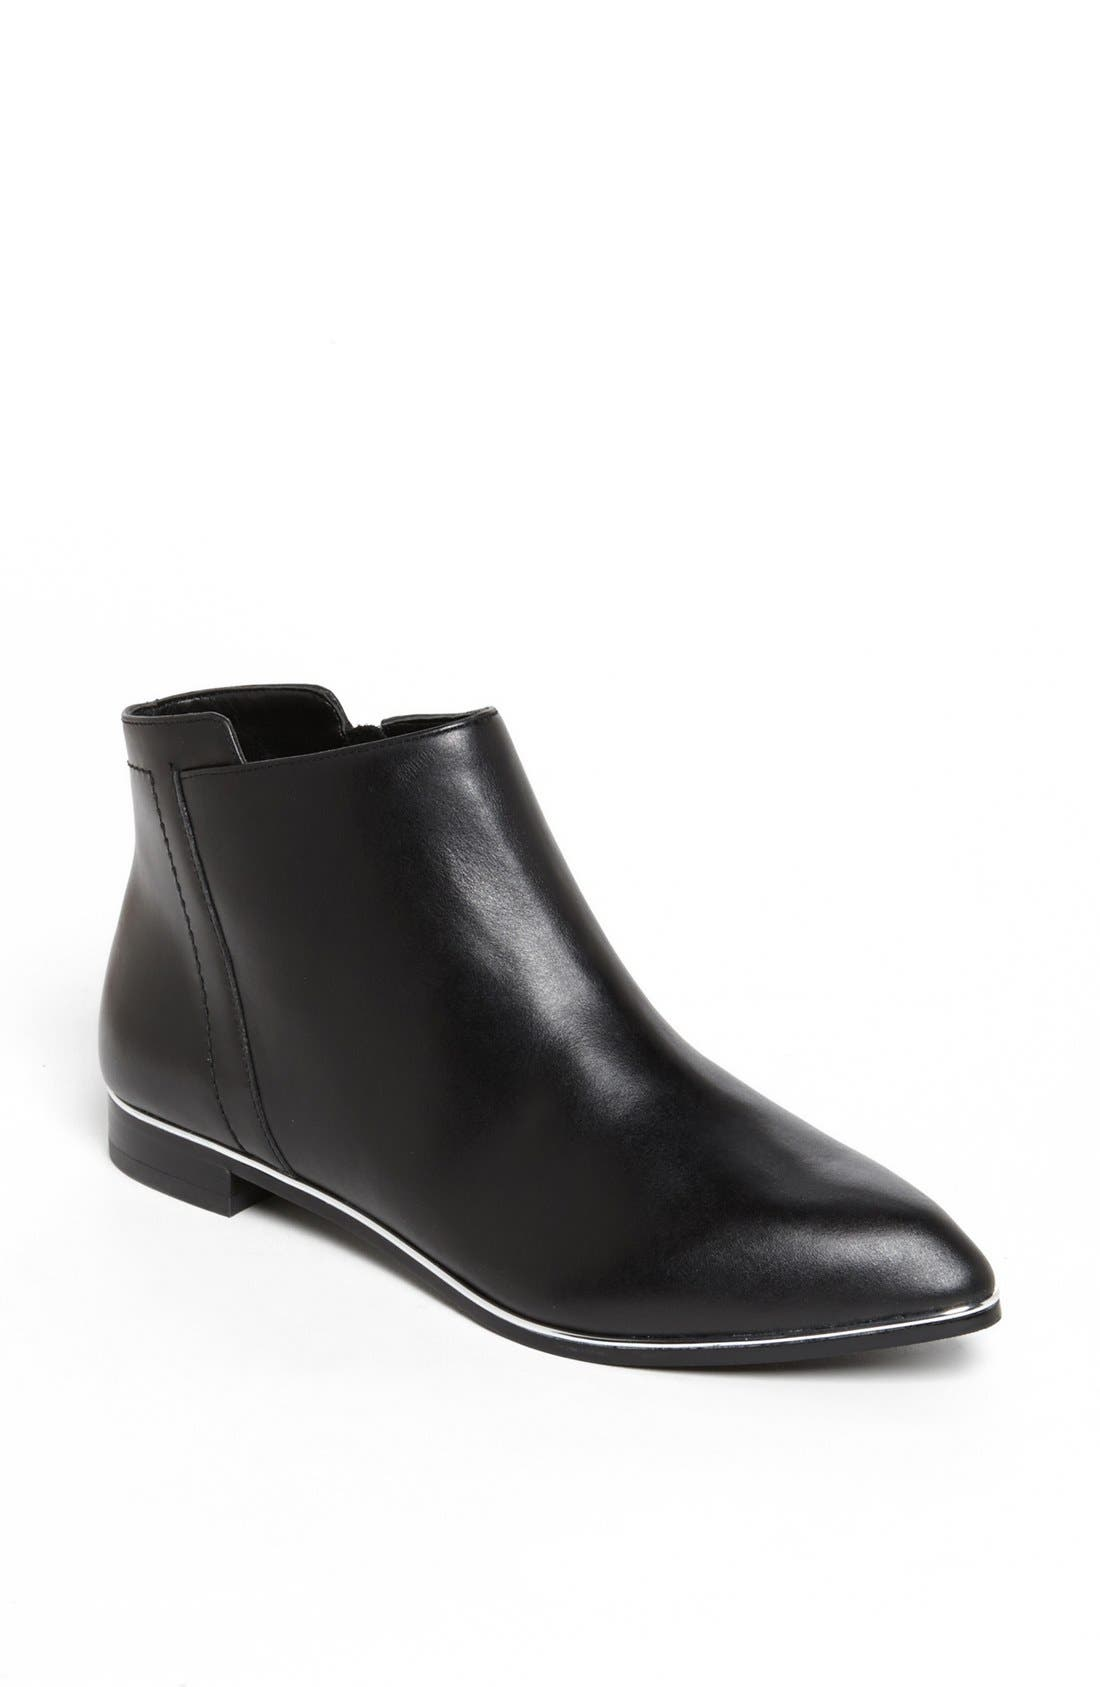 Alternate Image 1 Selected - Kenneth Cole New York 'Catch Fast' Bootie